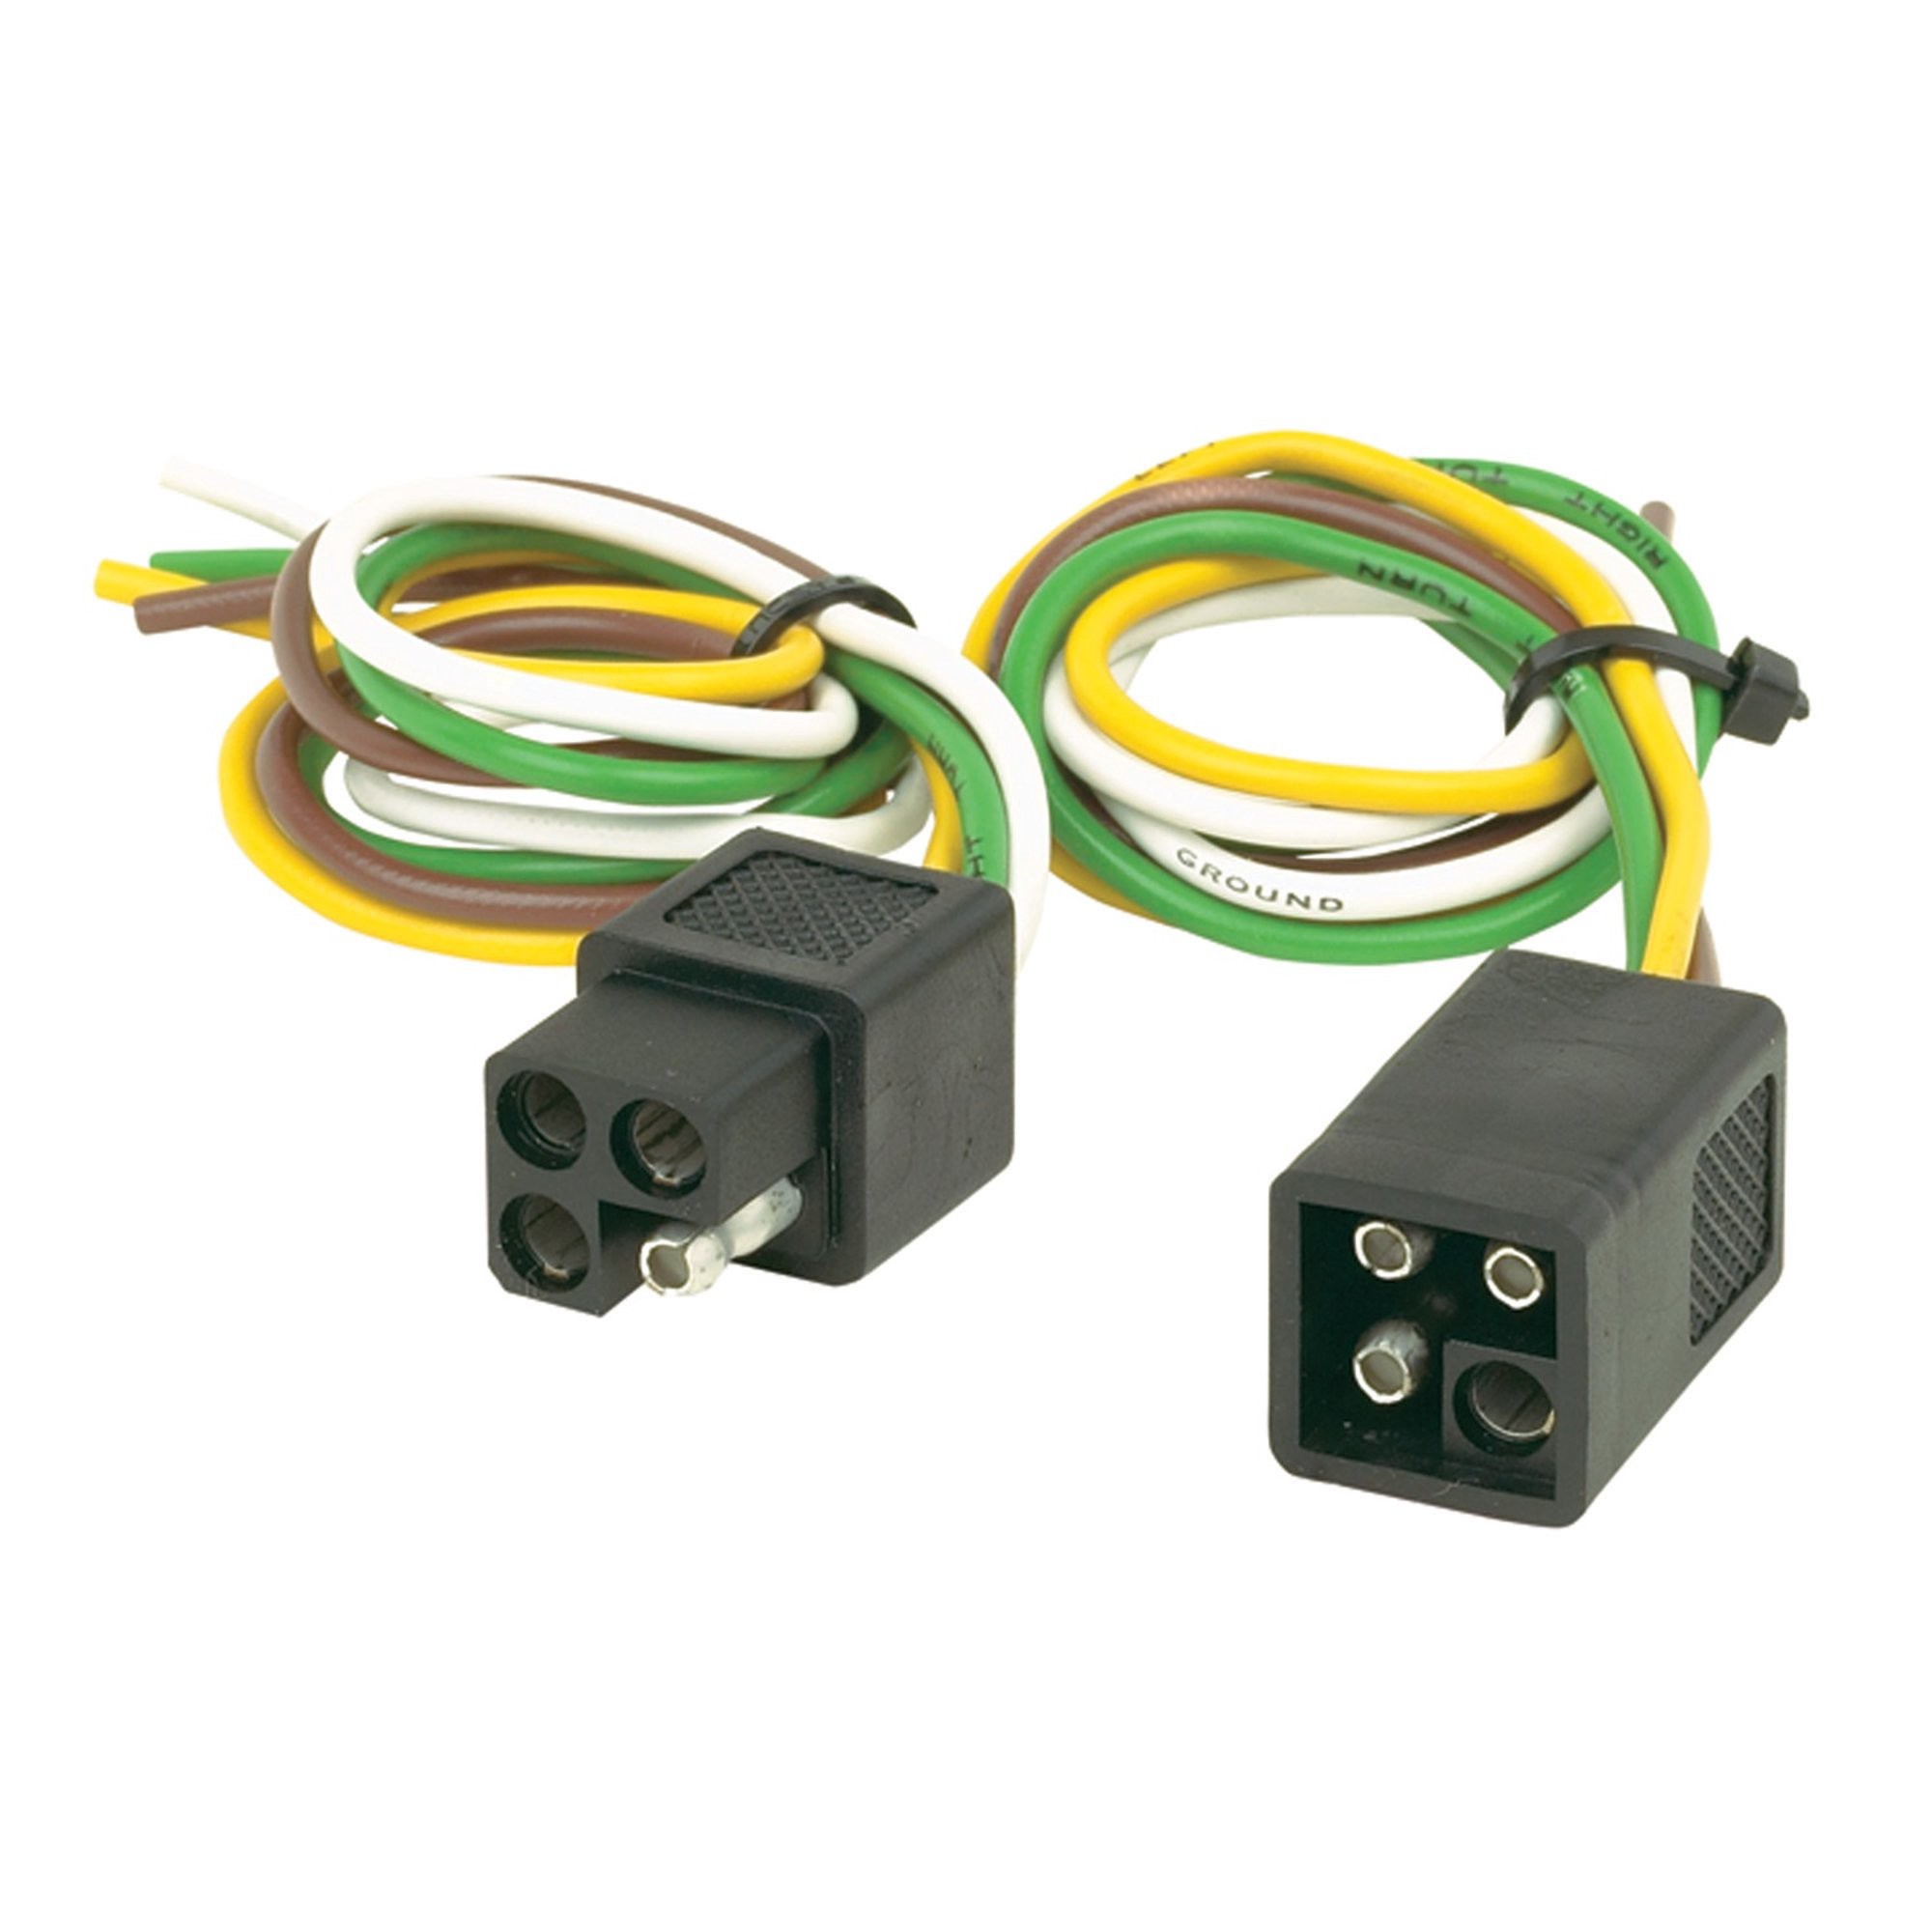 Hopkins MFG 11147975 Trailer Wiring Connector Kit Plug- In Simple (R); on e trailer wiring, trailer battery wiring, basic trailer wiring, 02 road king trailer wiring, 4 round trailer wiring, utility trailer wiring, trailer wiring 5 to 4, trailer surge brakes, trailer diagram, trailer wiring harness, ford 7 blade trailer wiring, dodge truck trailer wiring, honda pilot trailer wiring, trailer light wiring, 2005 silverado truck wiring, hoppy trailer wiring, trailer schematic, 4 prong trailer wiring, trailer cable wiring, standard trailer wiring,